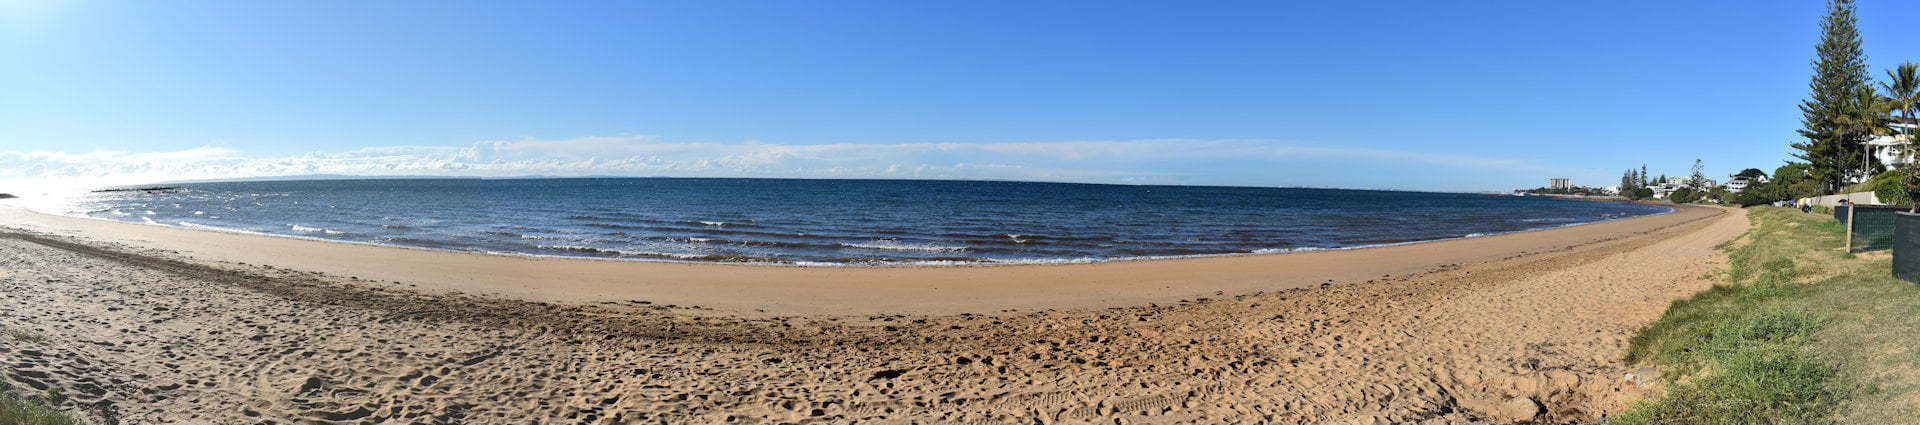 Panorama view of Queens Beach on the Redcliffe Peninsula